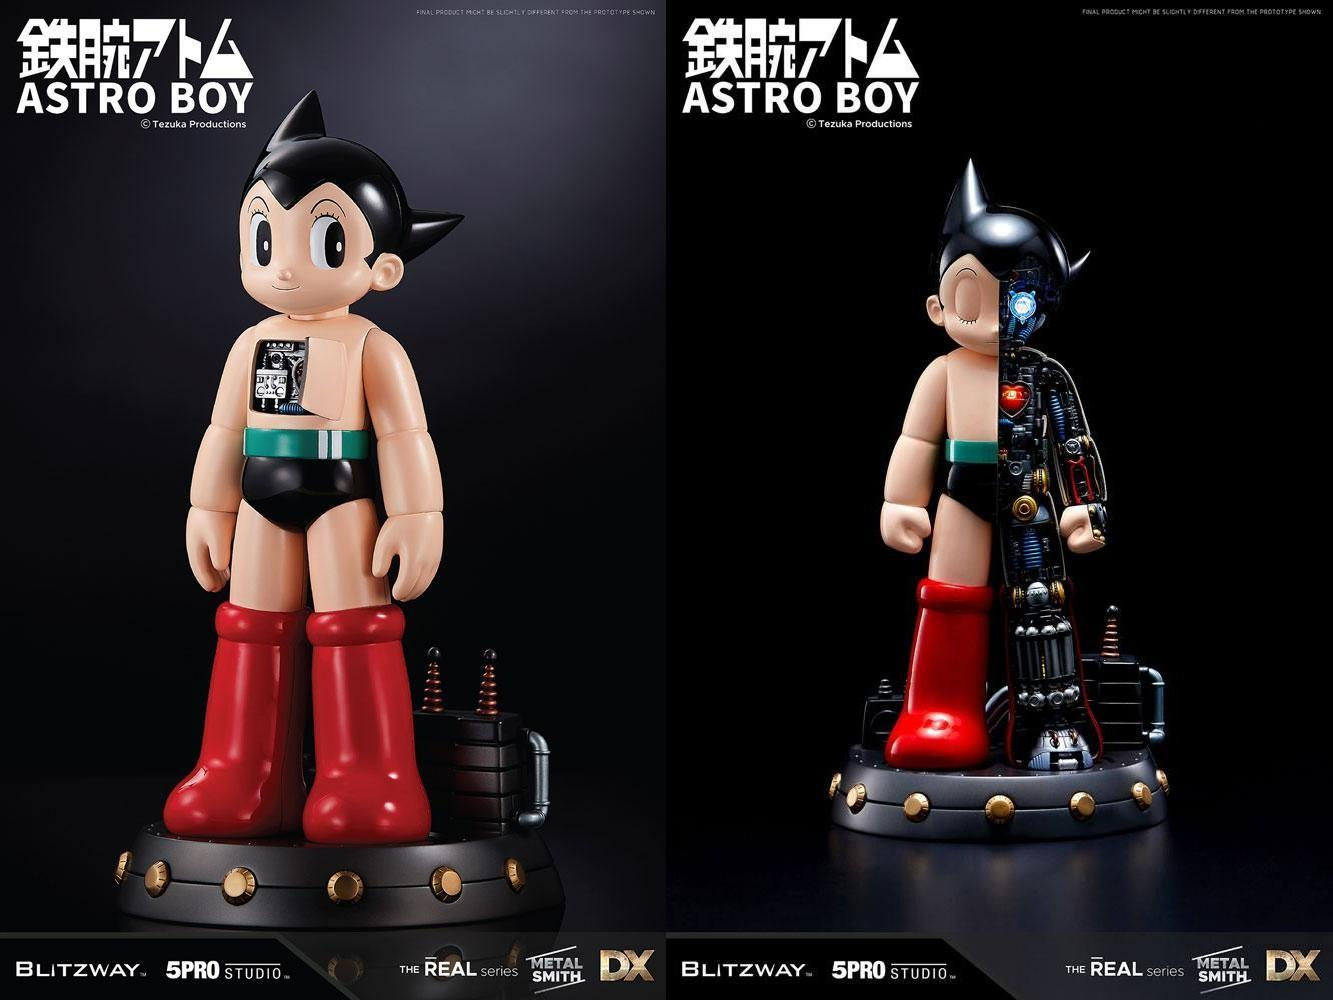 Astro boy statuette deluxe the real series atom ver 30 cm 2